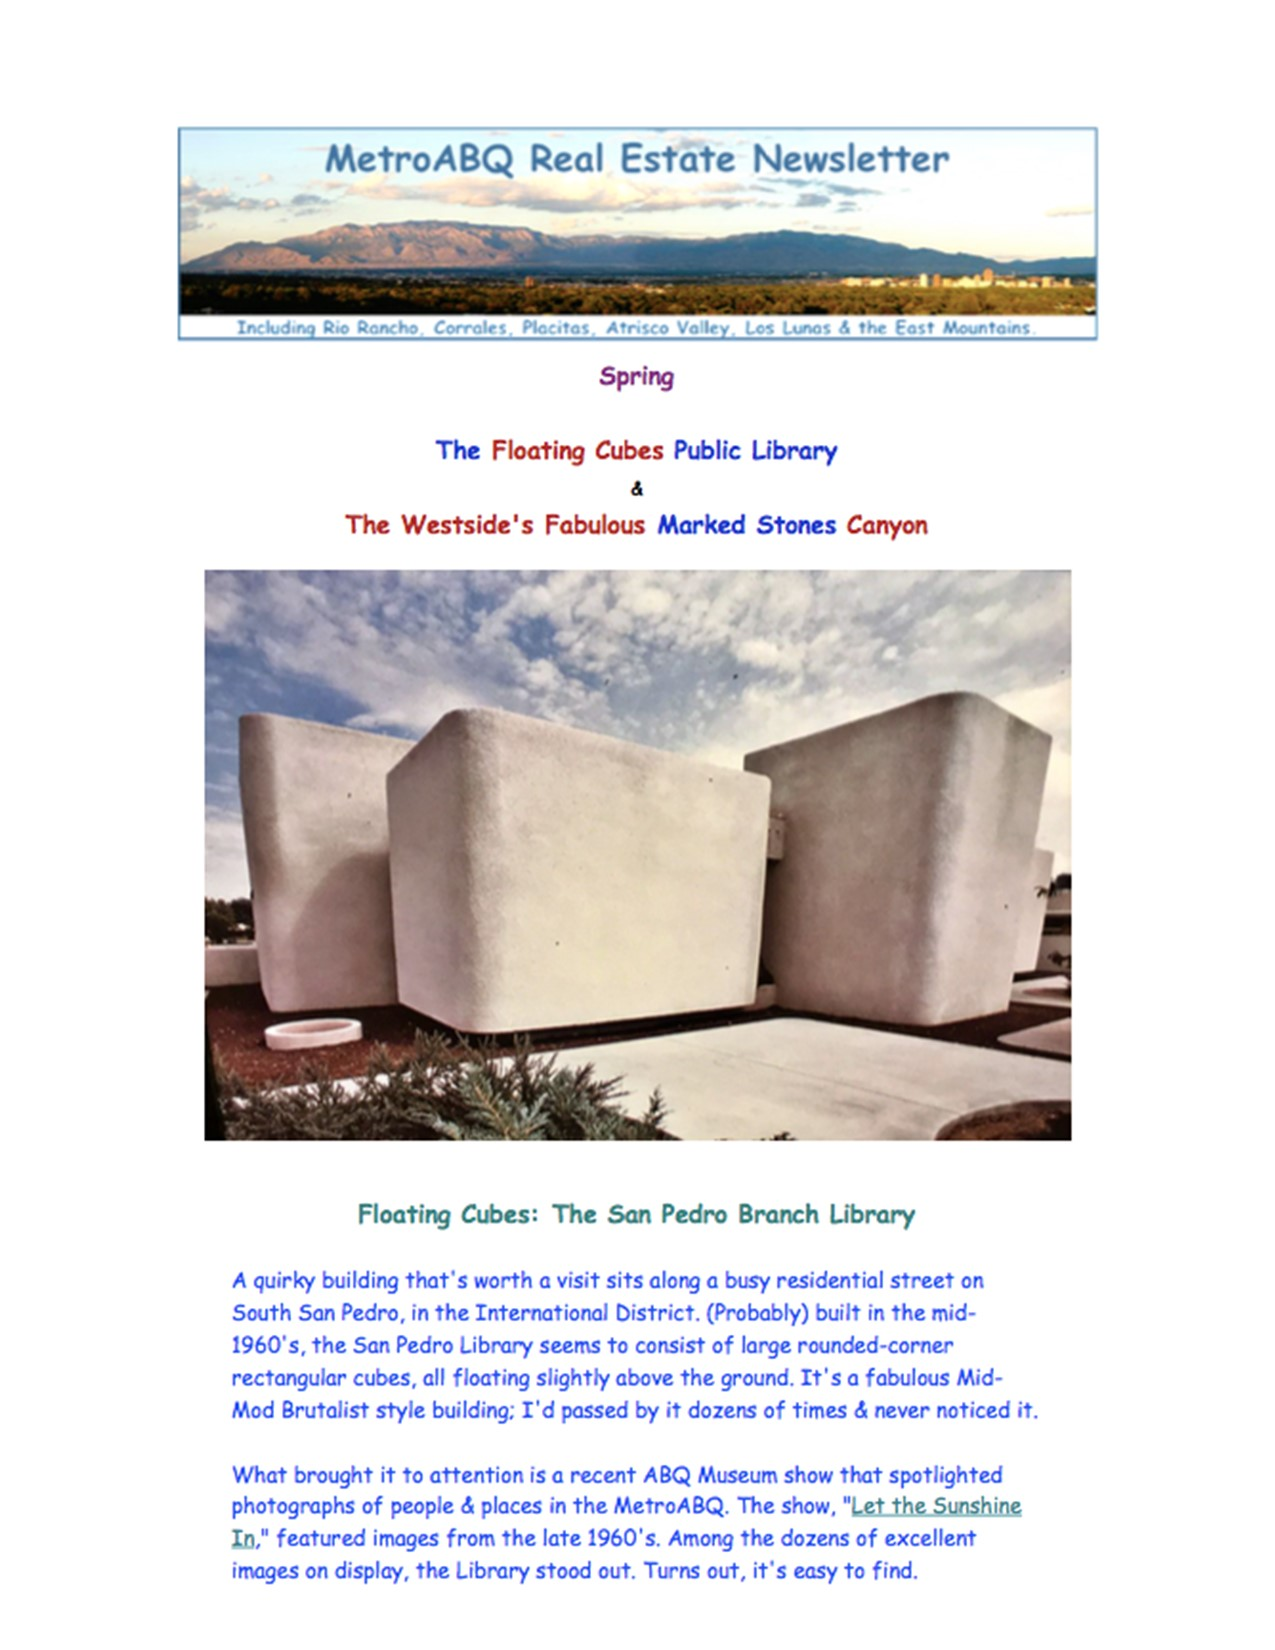 March -- Floating Library & Piedras Marcadas Canyon